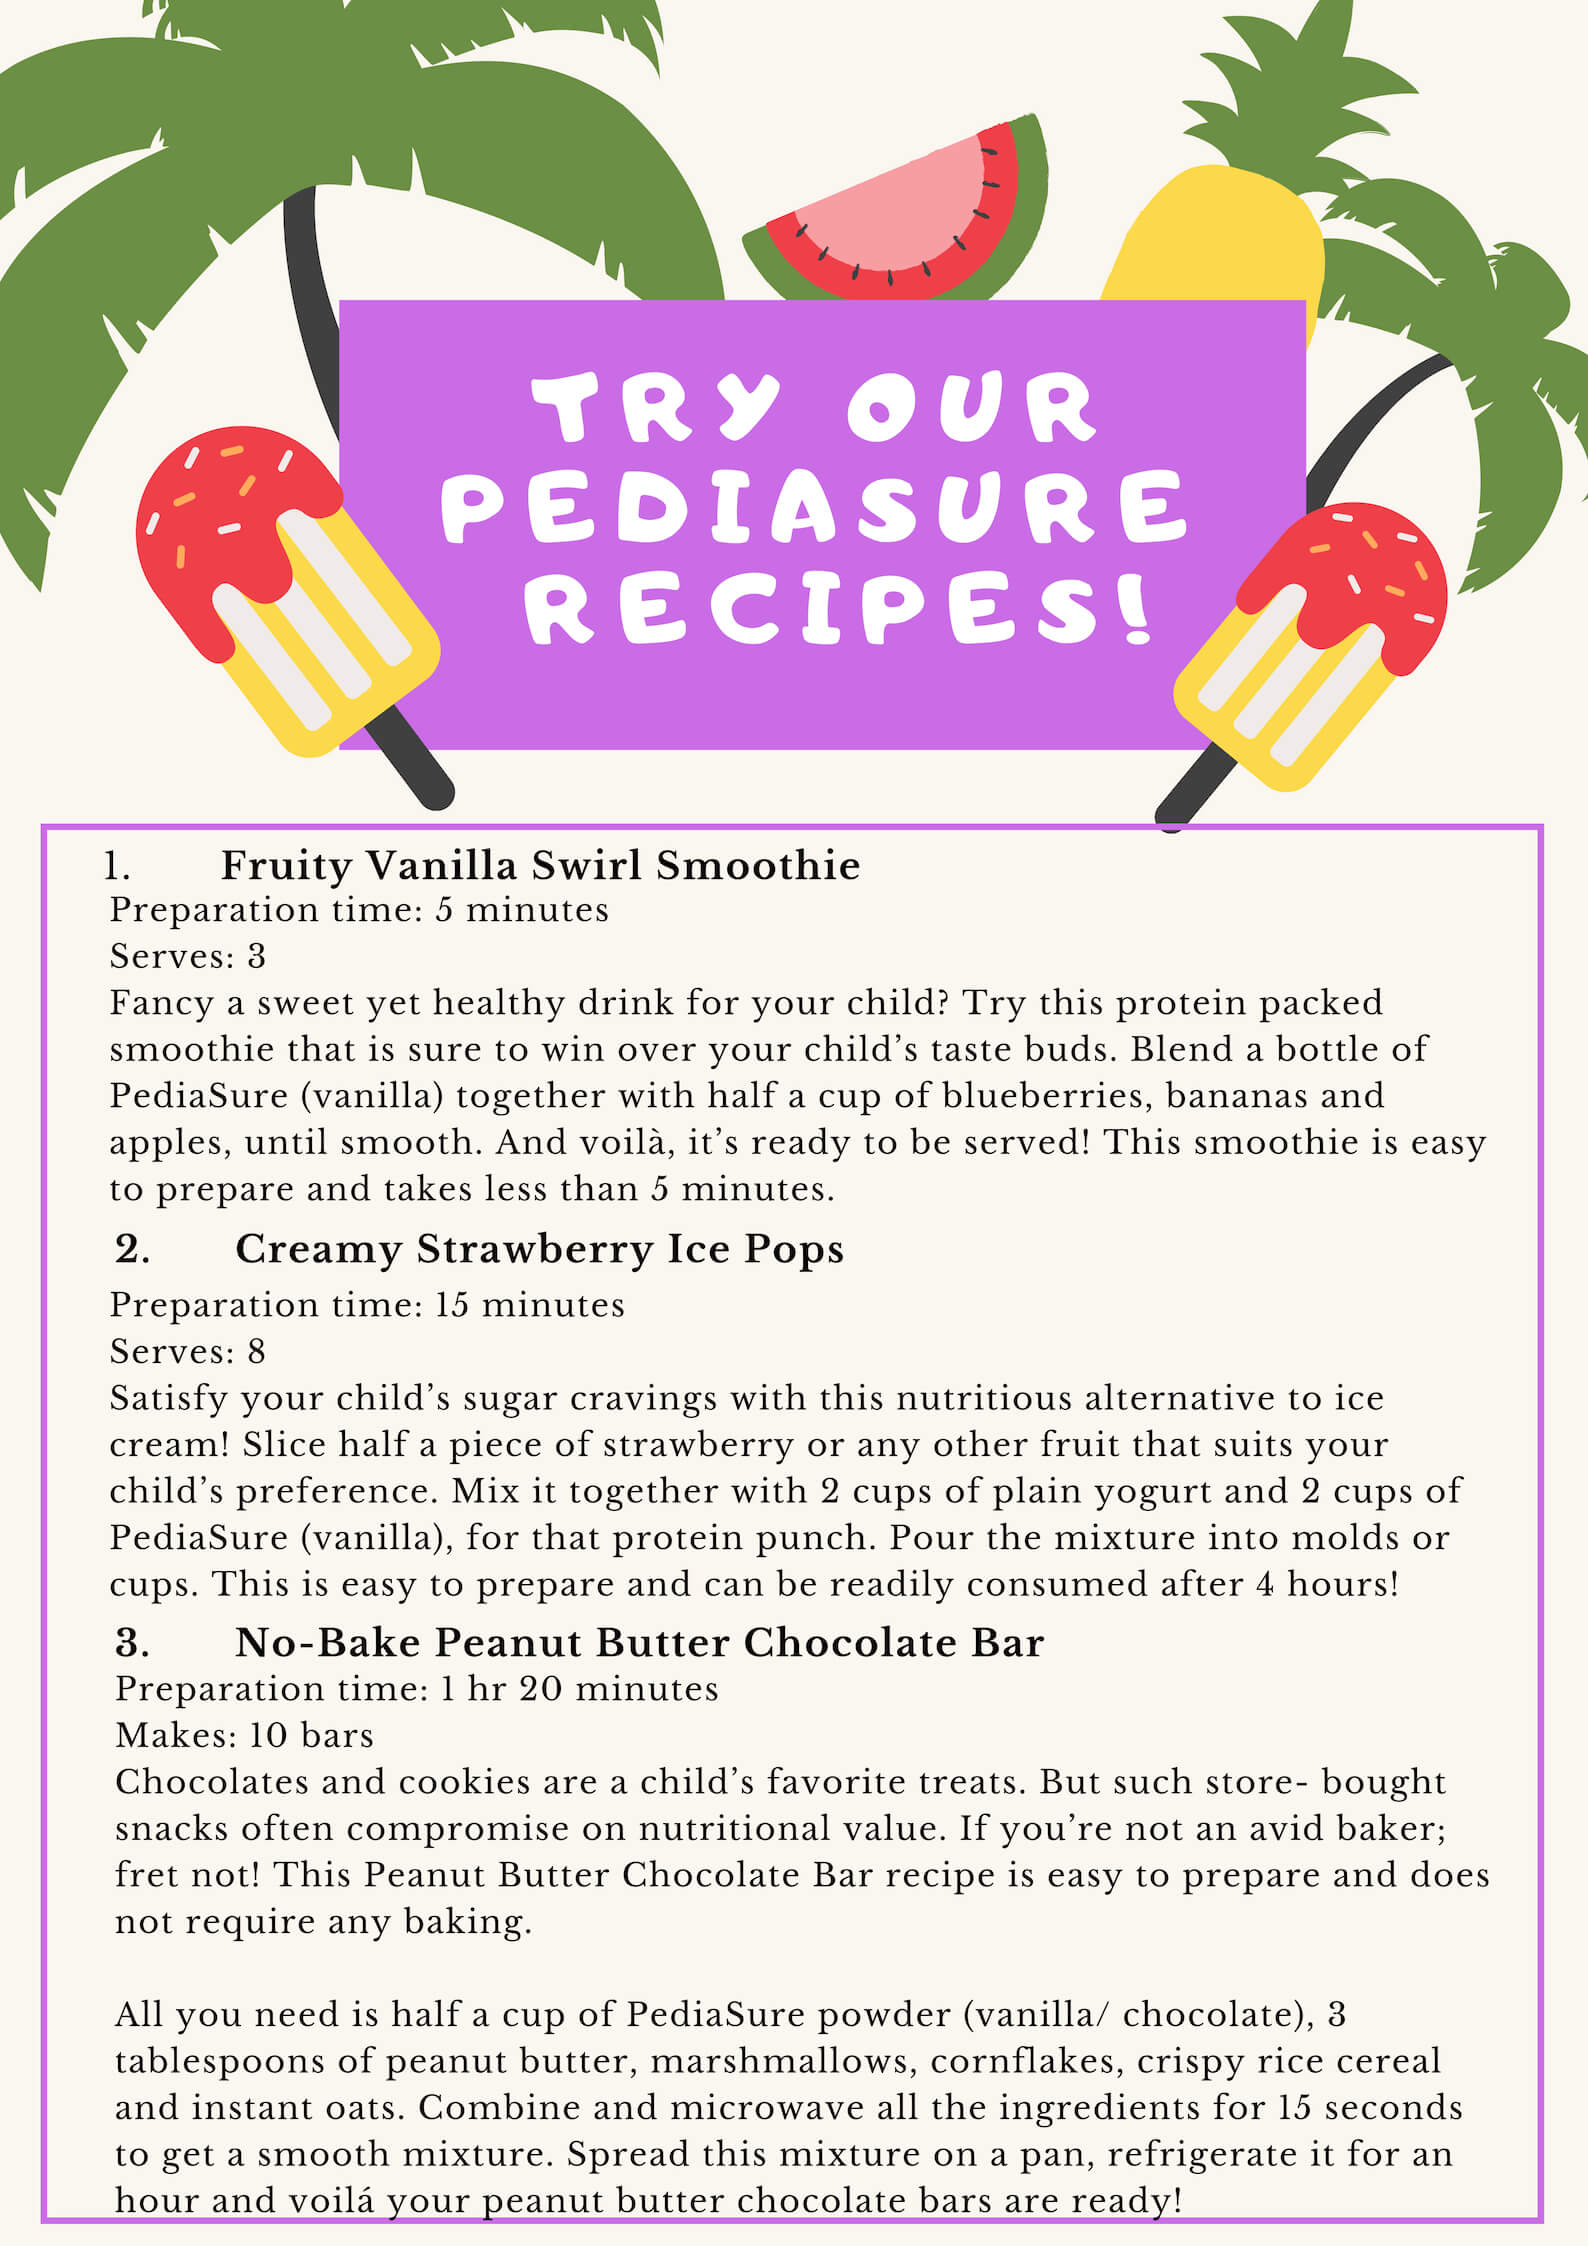 Pediasure recipes